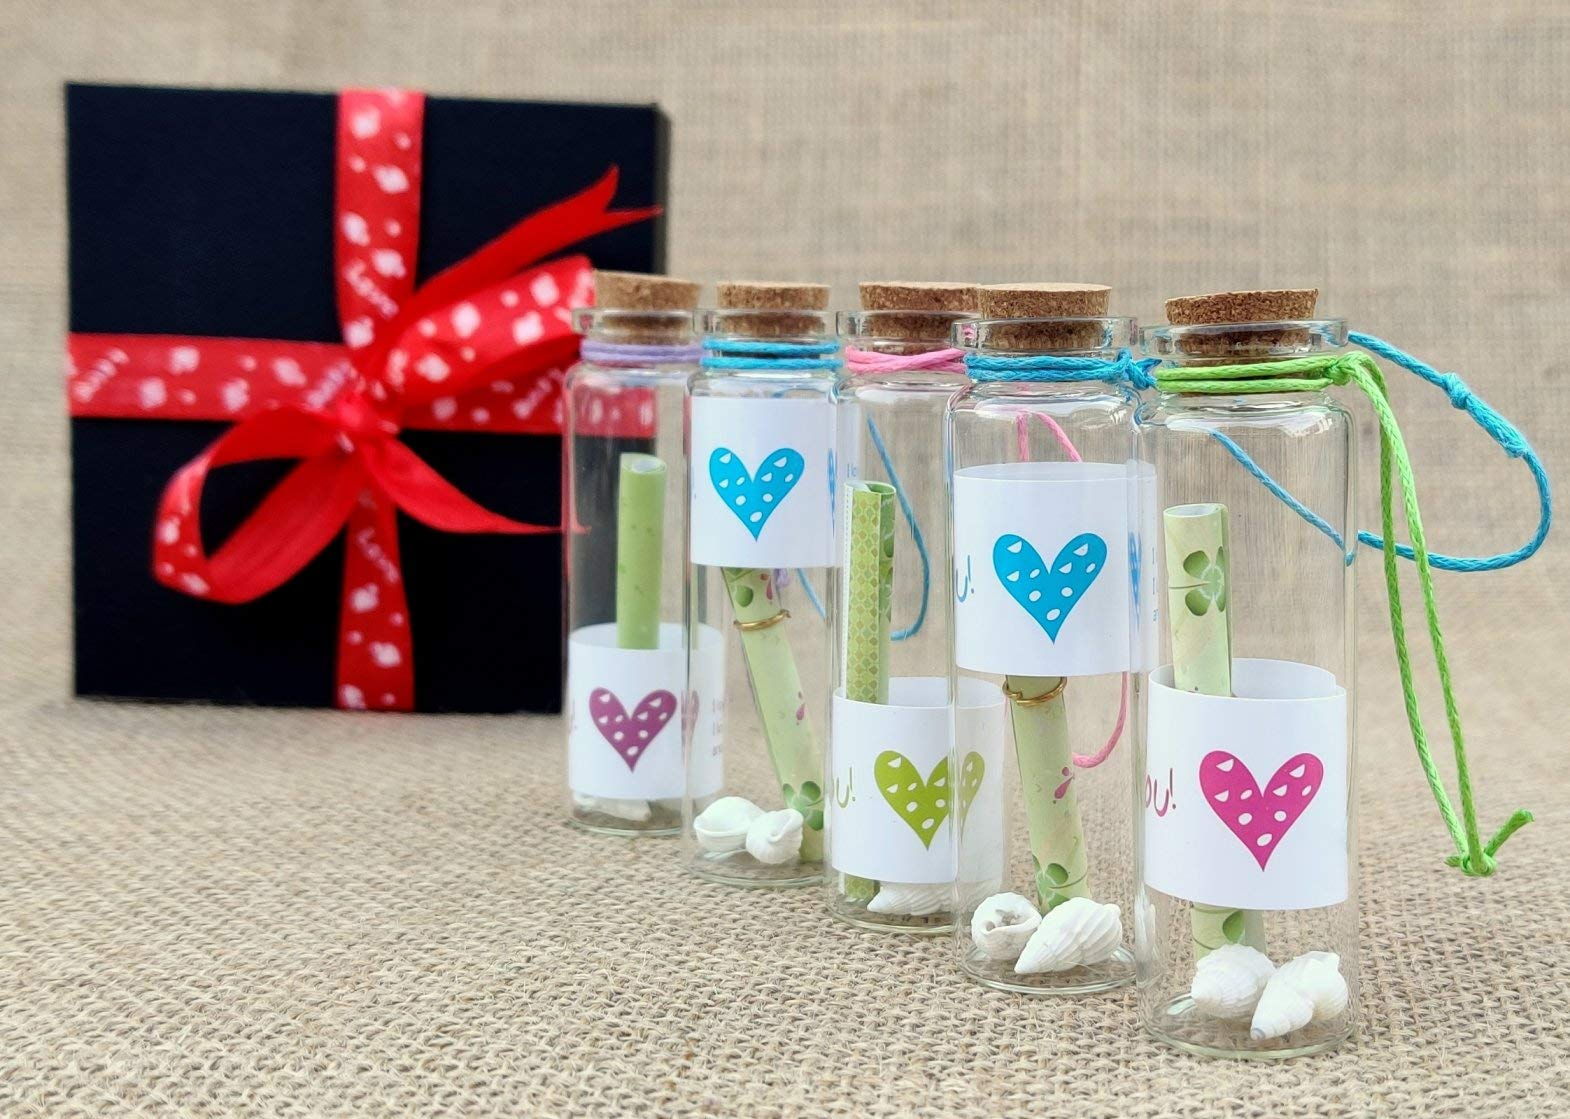 McClub Valentines Special Personalized Gift Love Message Bottles Set of 5 Piece with Beautiful Wooden Box (B07MJZ1MT2) Amazon Price History, Amazon Price Tracker